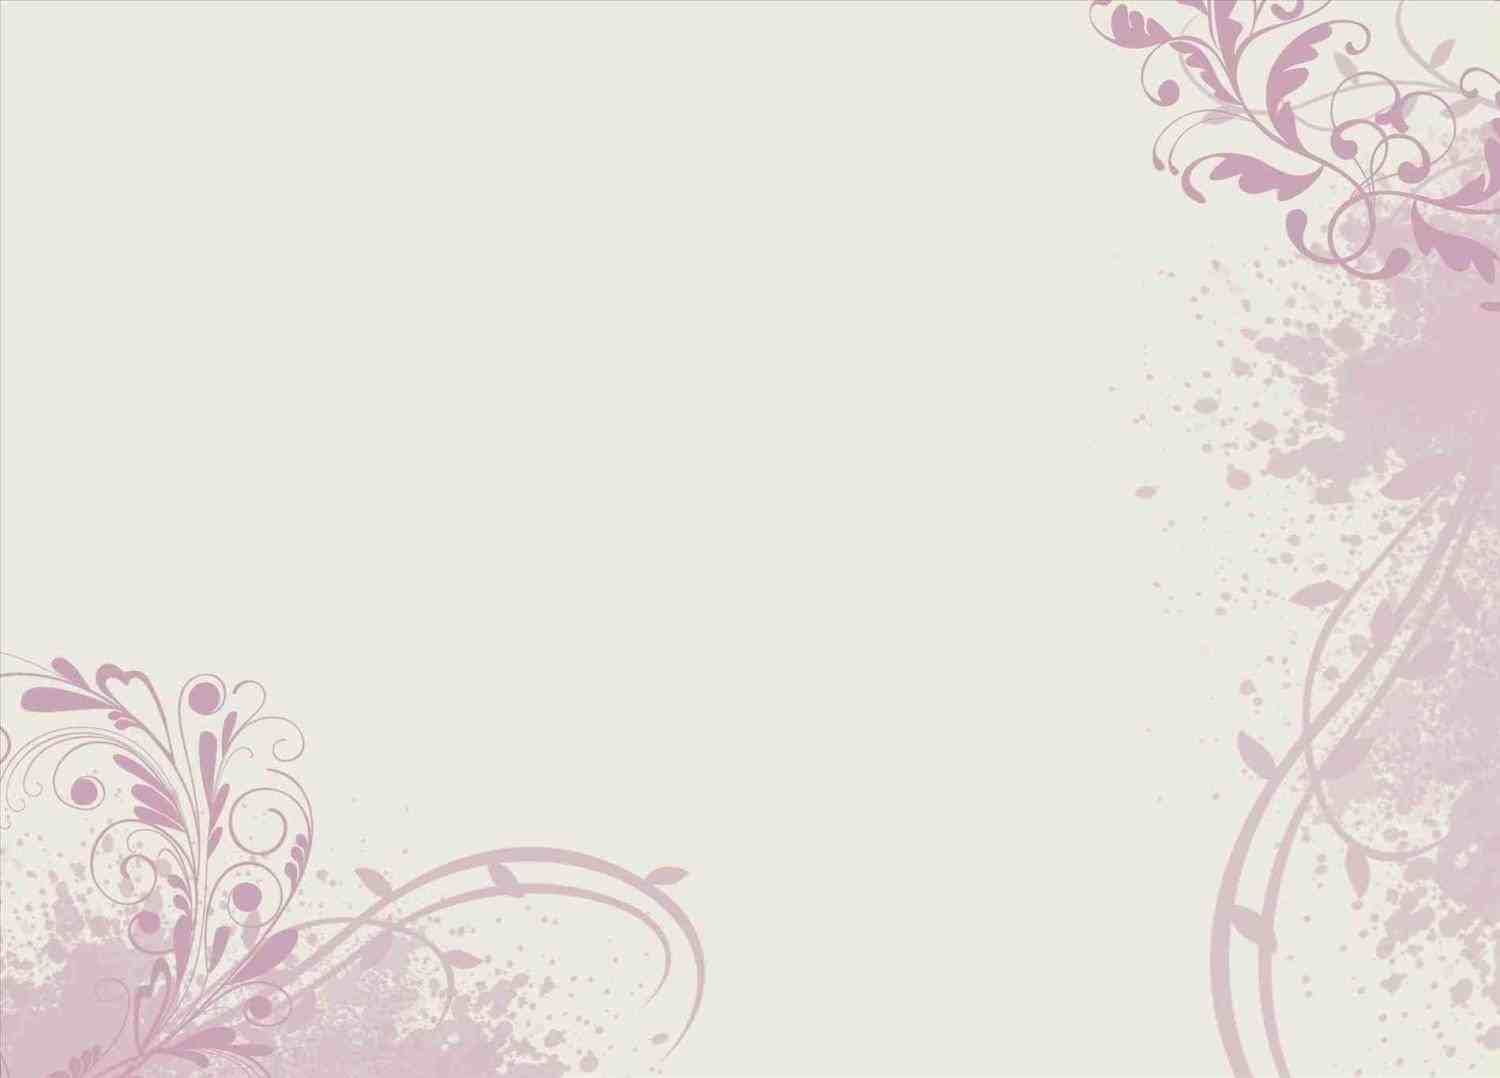 Wedbridal Site Wedding Invitation Background Wedding Invitation Cards Online Invitation Background